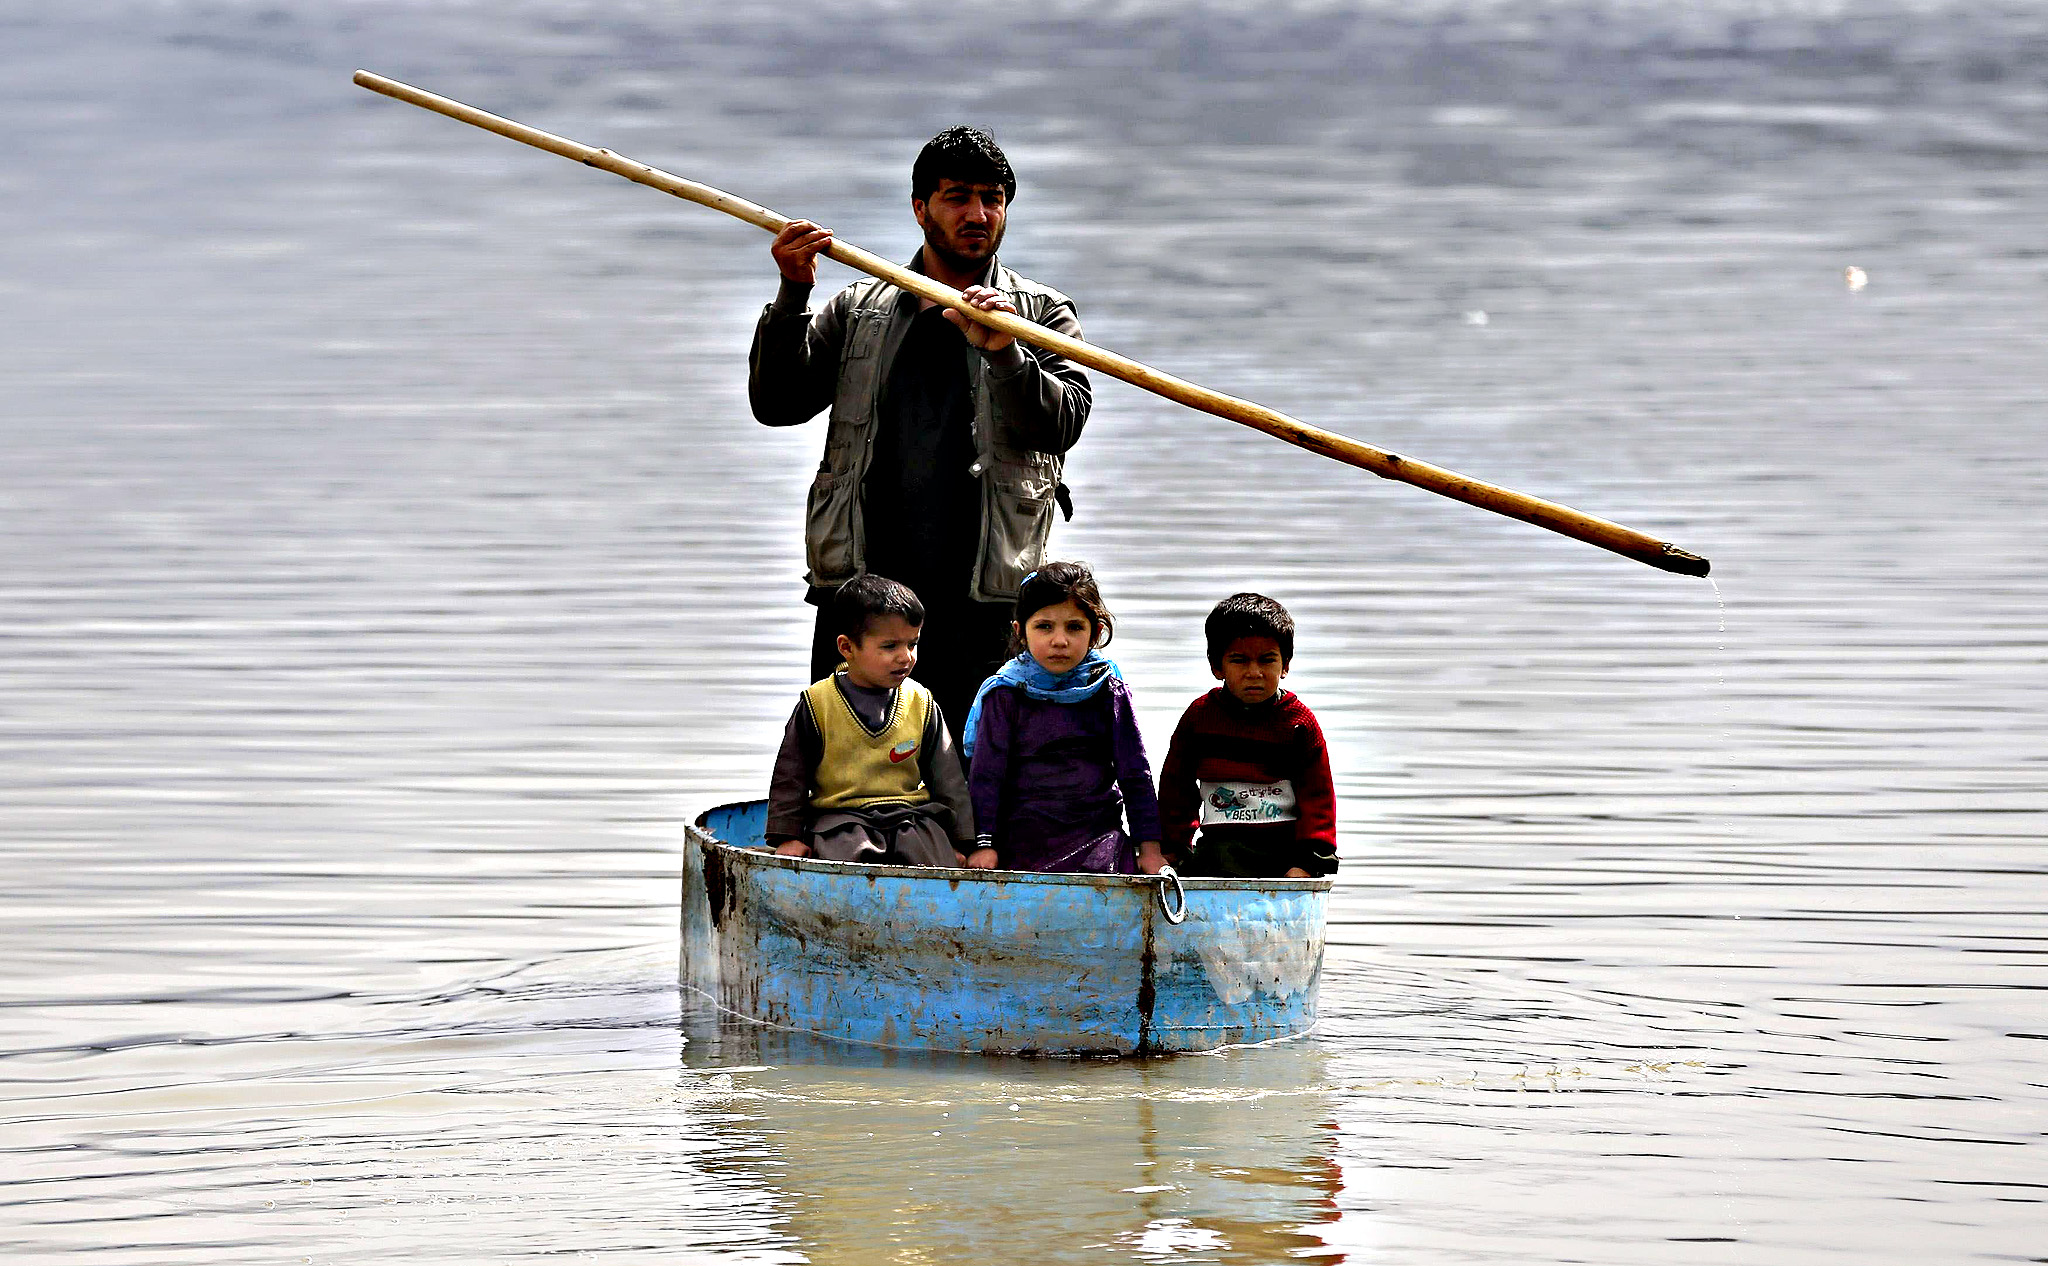 Afghan children sail on a homemade boat in a lake on the outskirts of Kabul, February 24, 2015. Each ride costs 50 Afghanis ($0.87), according to the boatman.